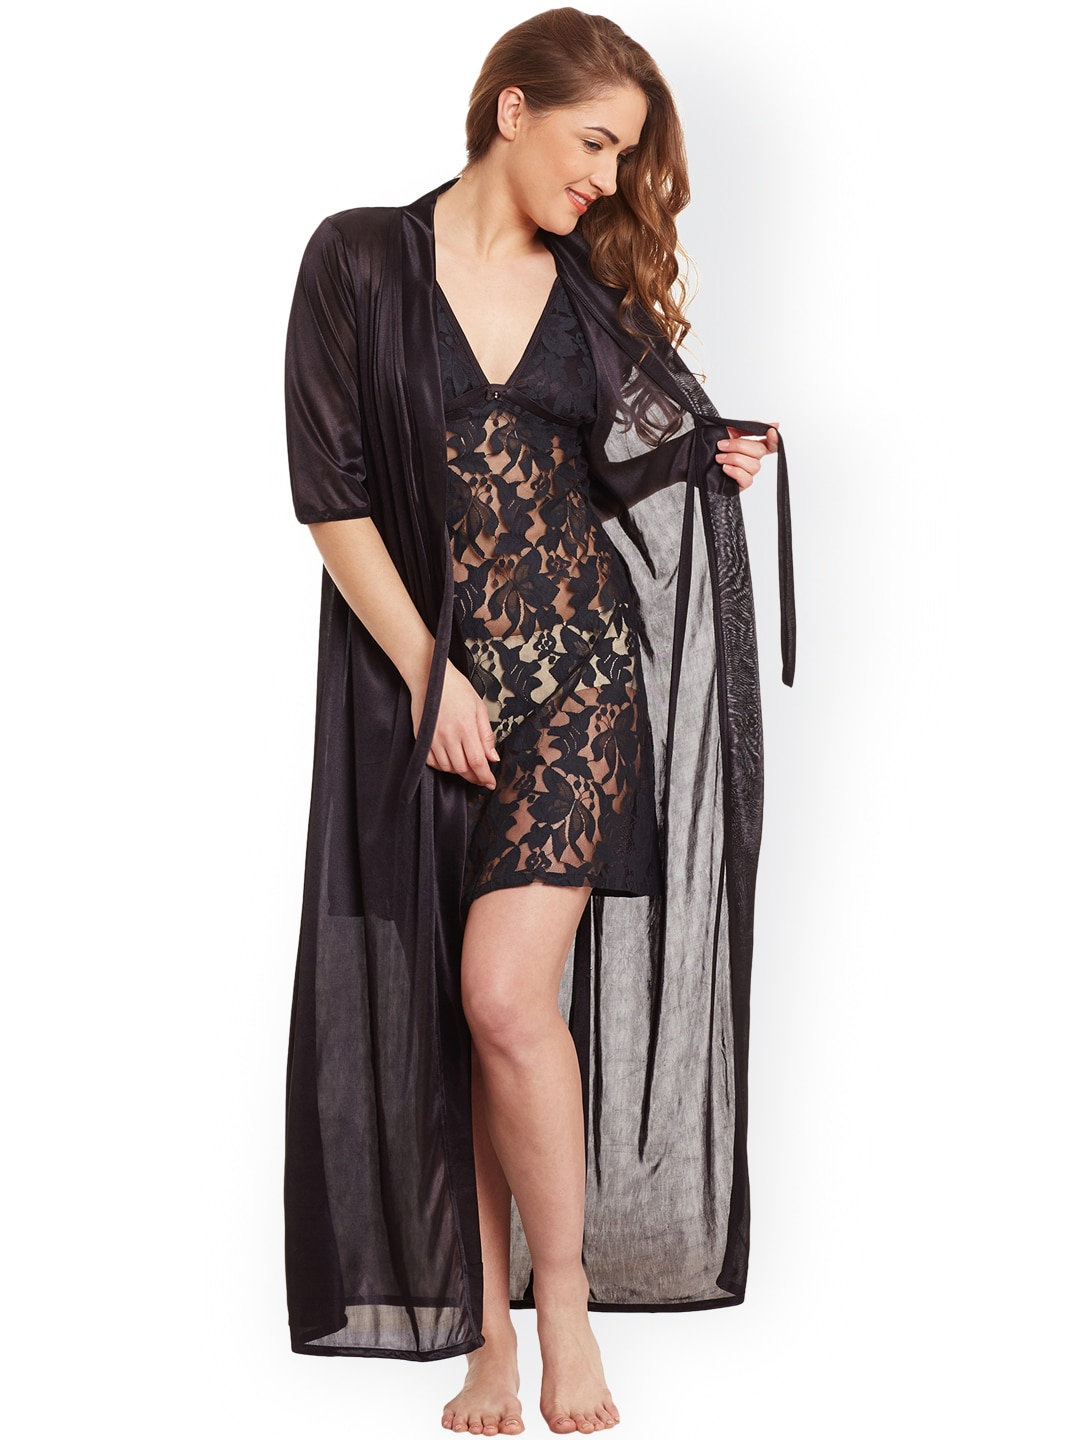 Claura Black Lace Satin Nightdress with Robe ST-20